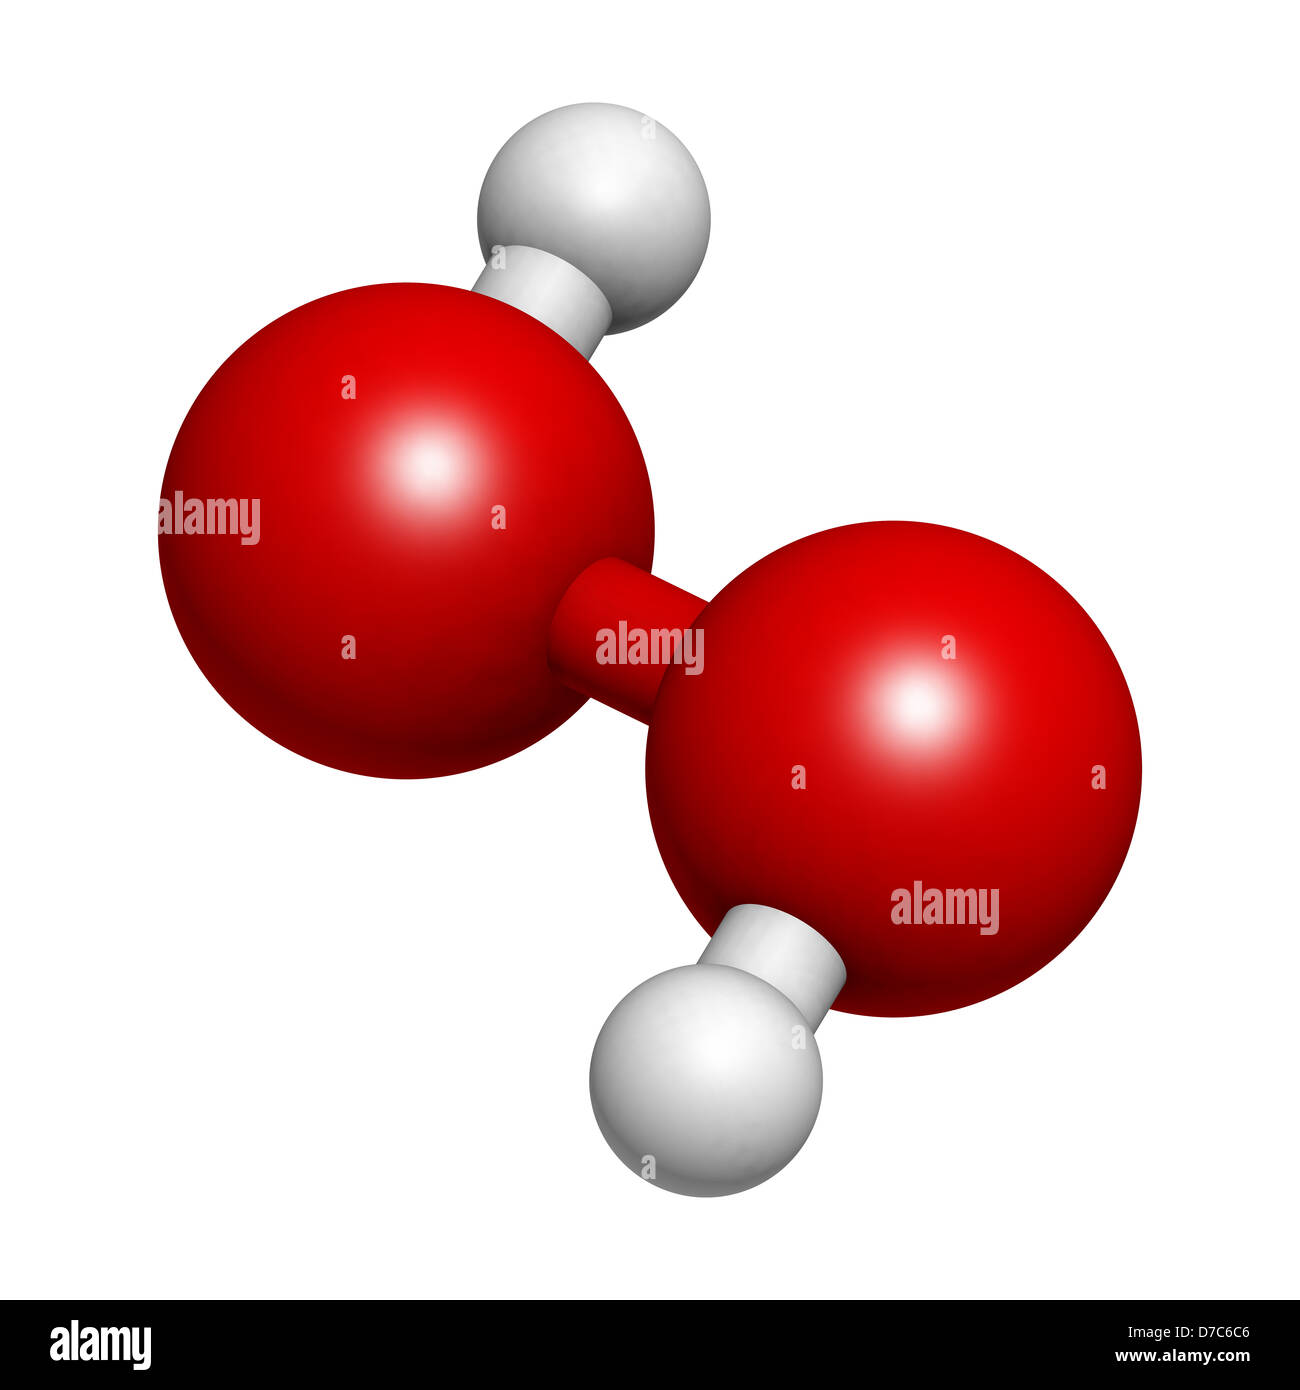 Hydrogen Peroxide  H2o2  Molecule  Chemical Structure  Hooh Is An Stock Photo  56202166